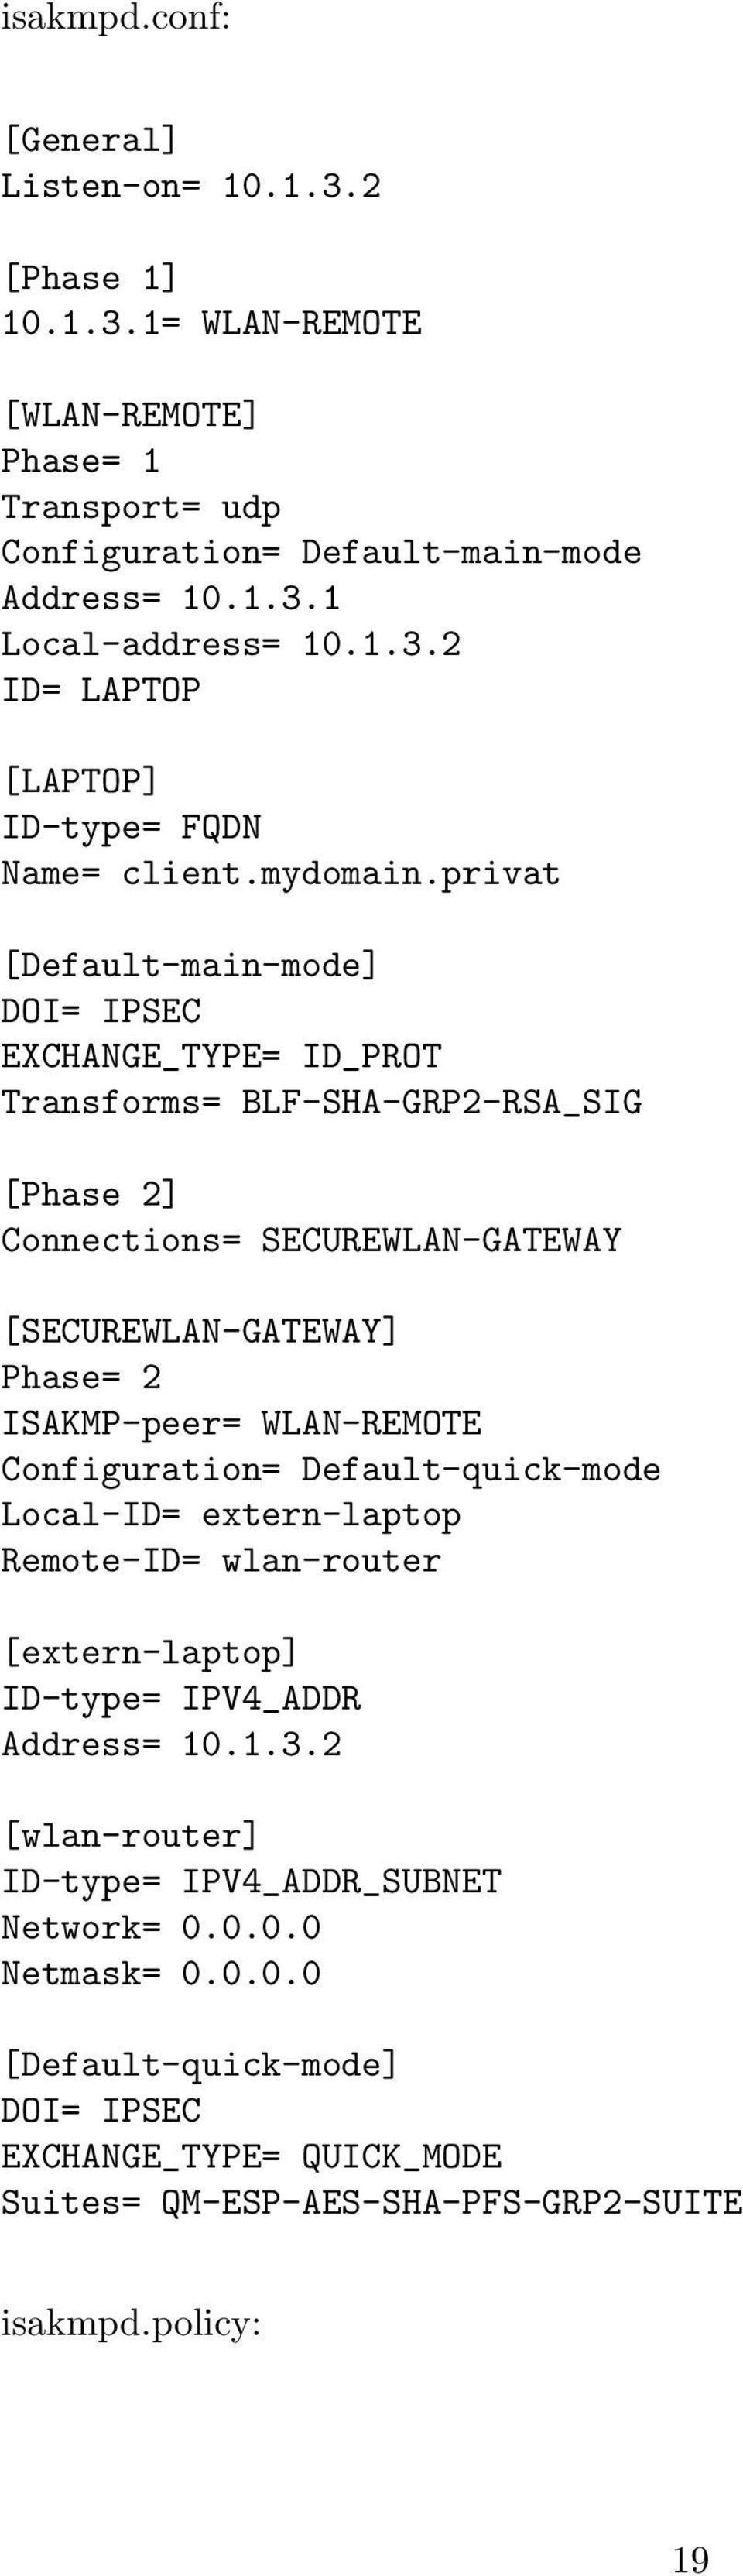 privat [Default-main-mode] DOI= IPSEC EXCHANGE_TYPE= ID_PROT Transforms= BLF-SHA-GRP2-RSA_SIG [Phase 2] Connections= SECUREWLAN-GATEWAY [SECUREWLAN-GATEWAY] Phase= 2 ISAKMP-peer=